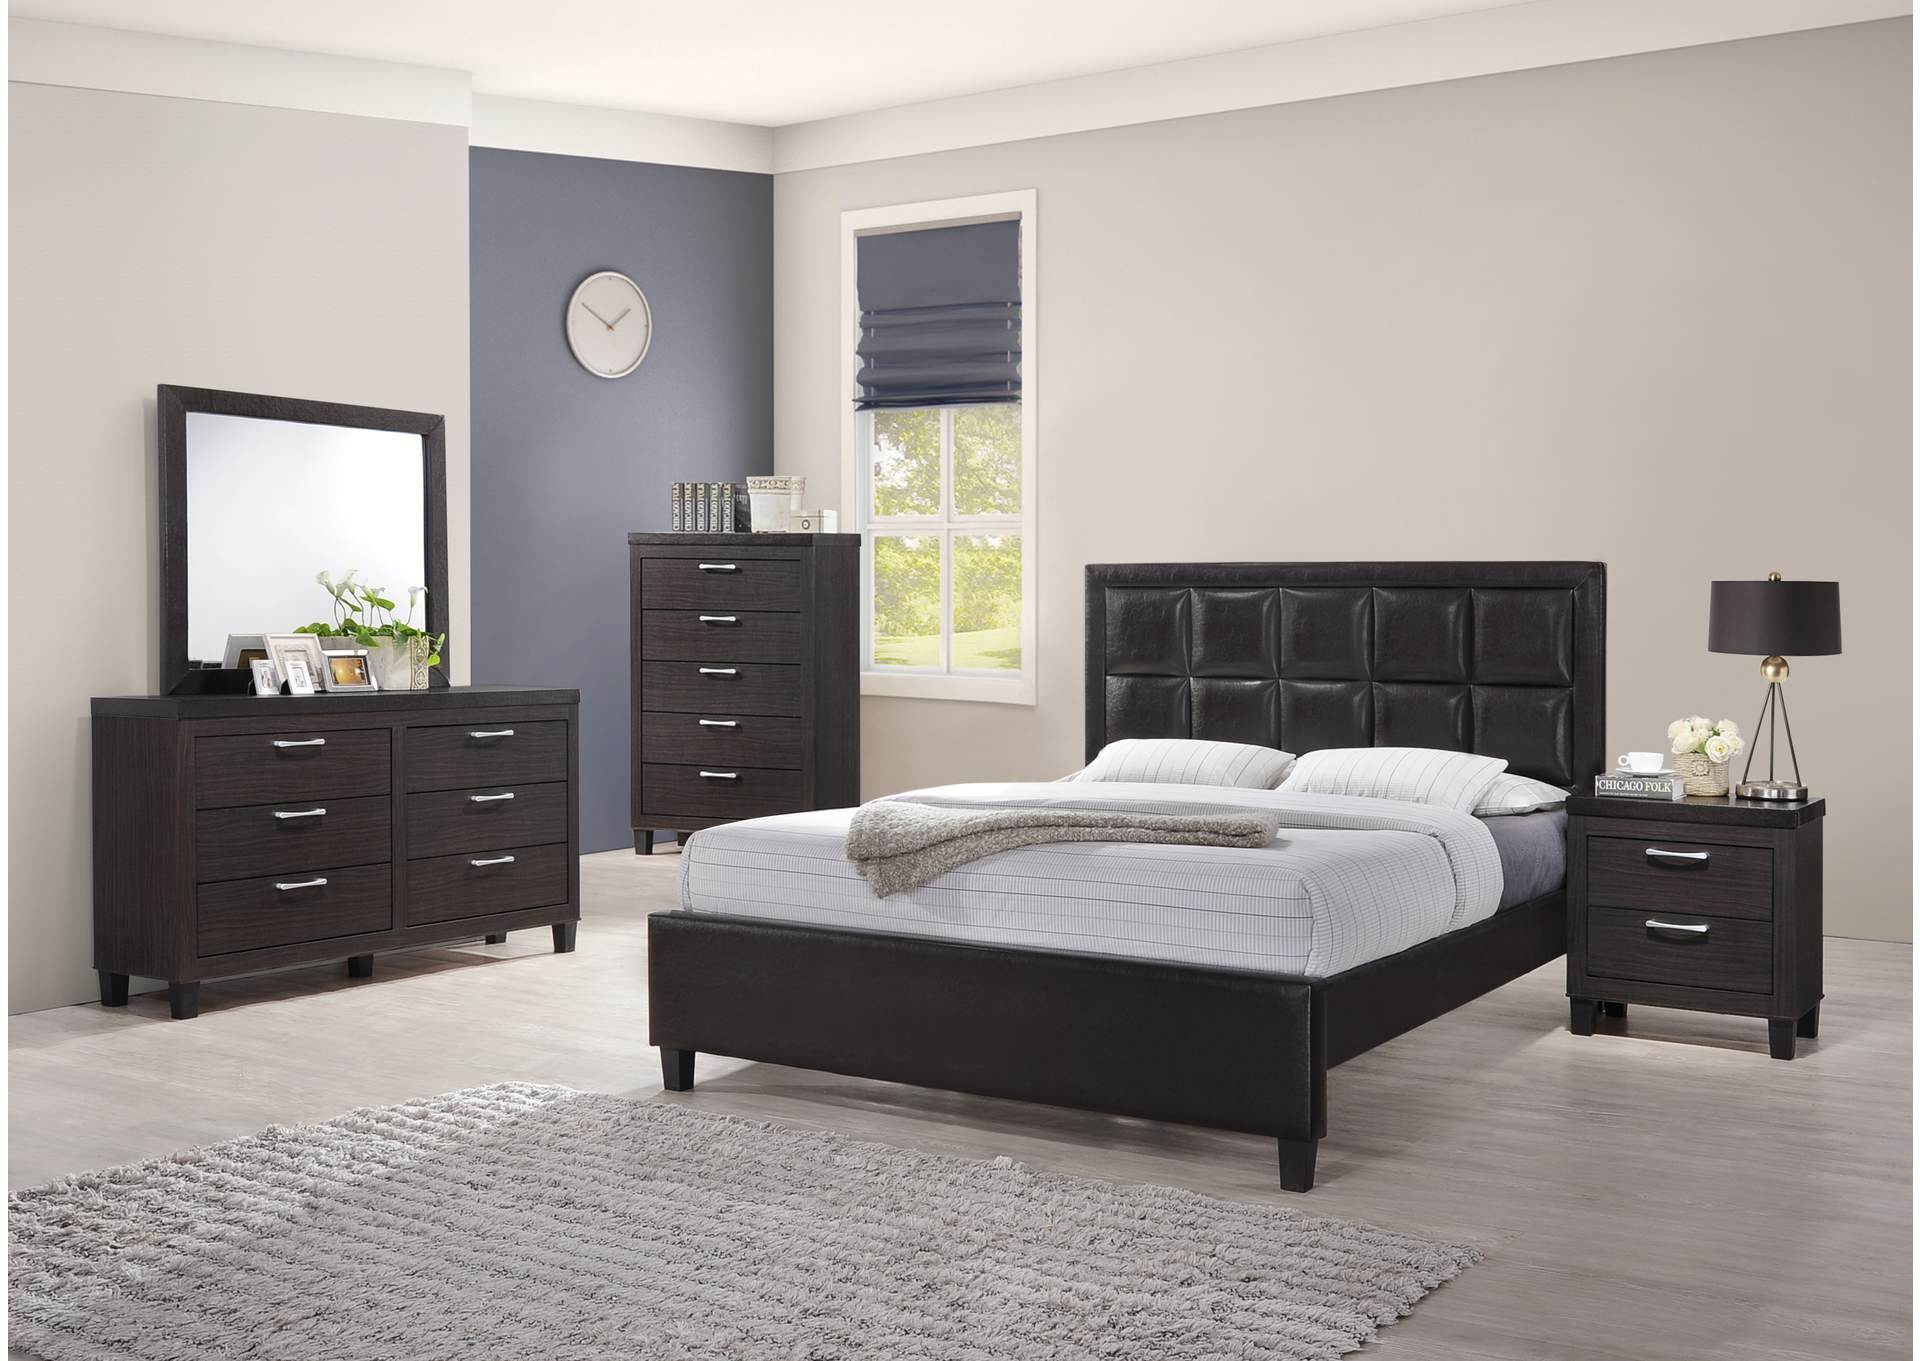 Dark Grey Panel Queen 4 Piece Bedroom Set W/ Chest, Dresser & Mirror,Global Trading